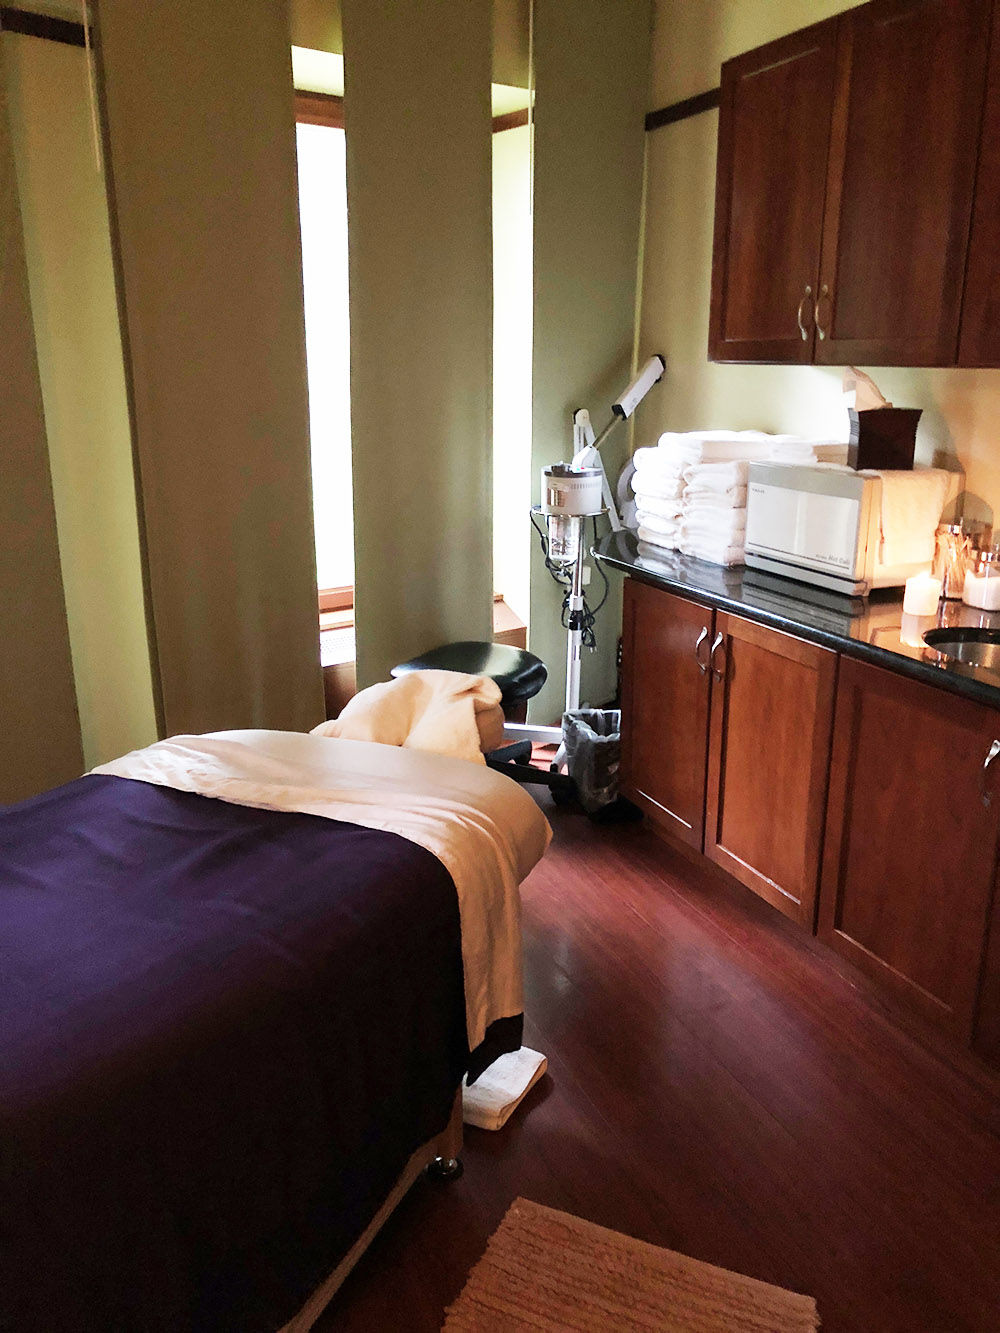 The spa also offers a variety of facials and body treatments.